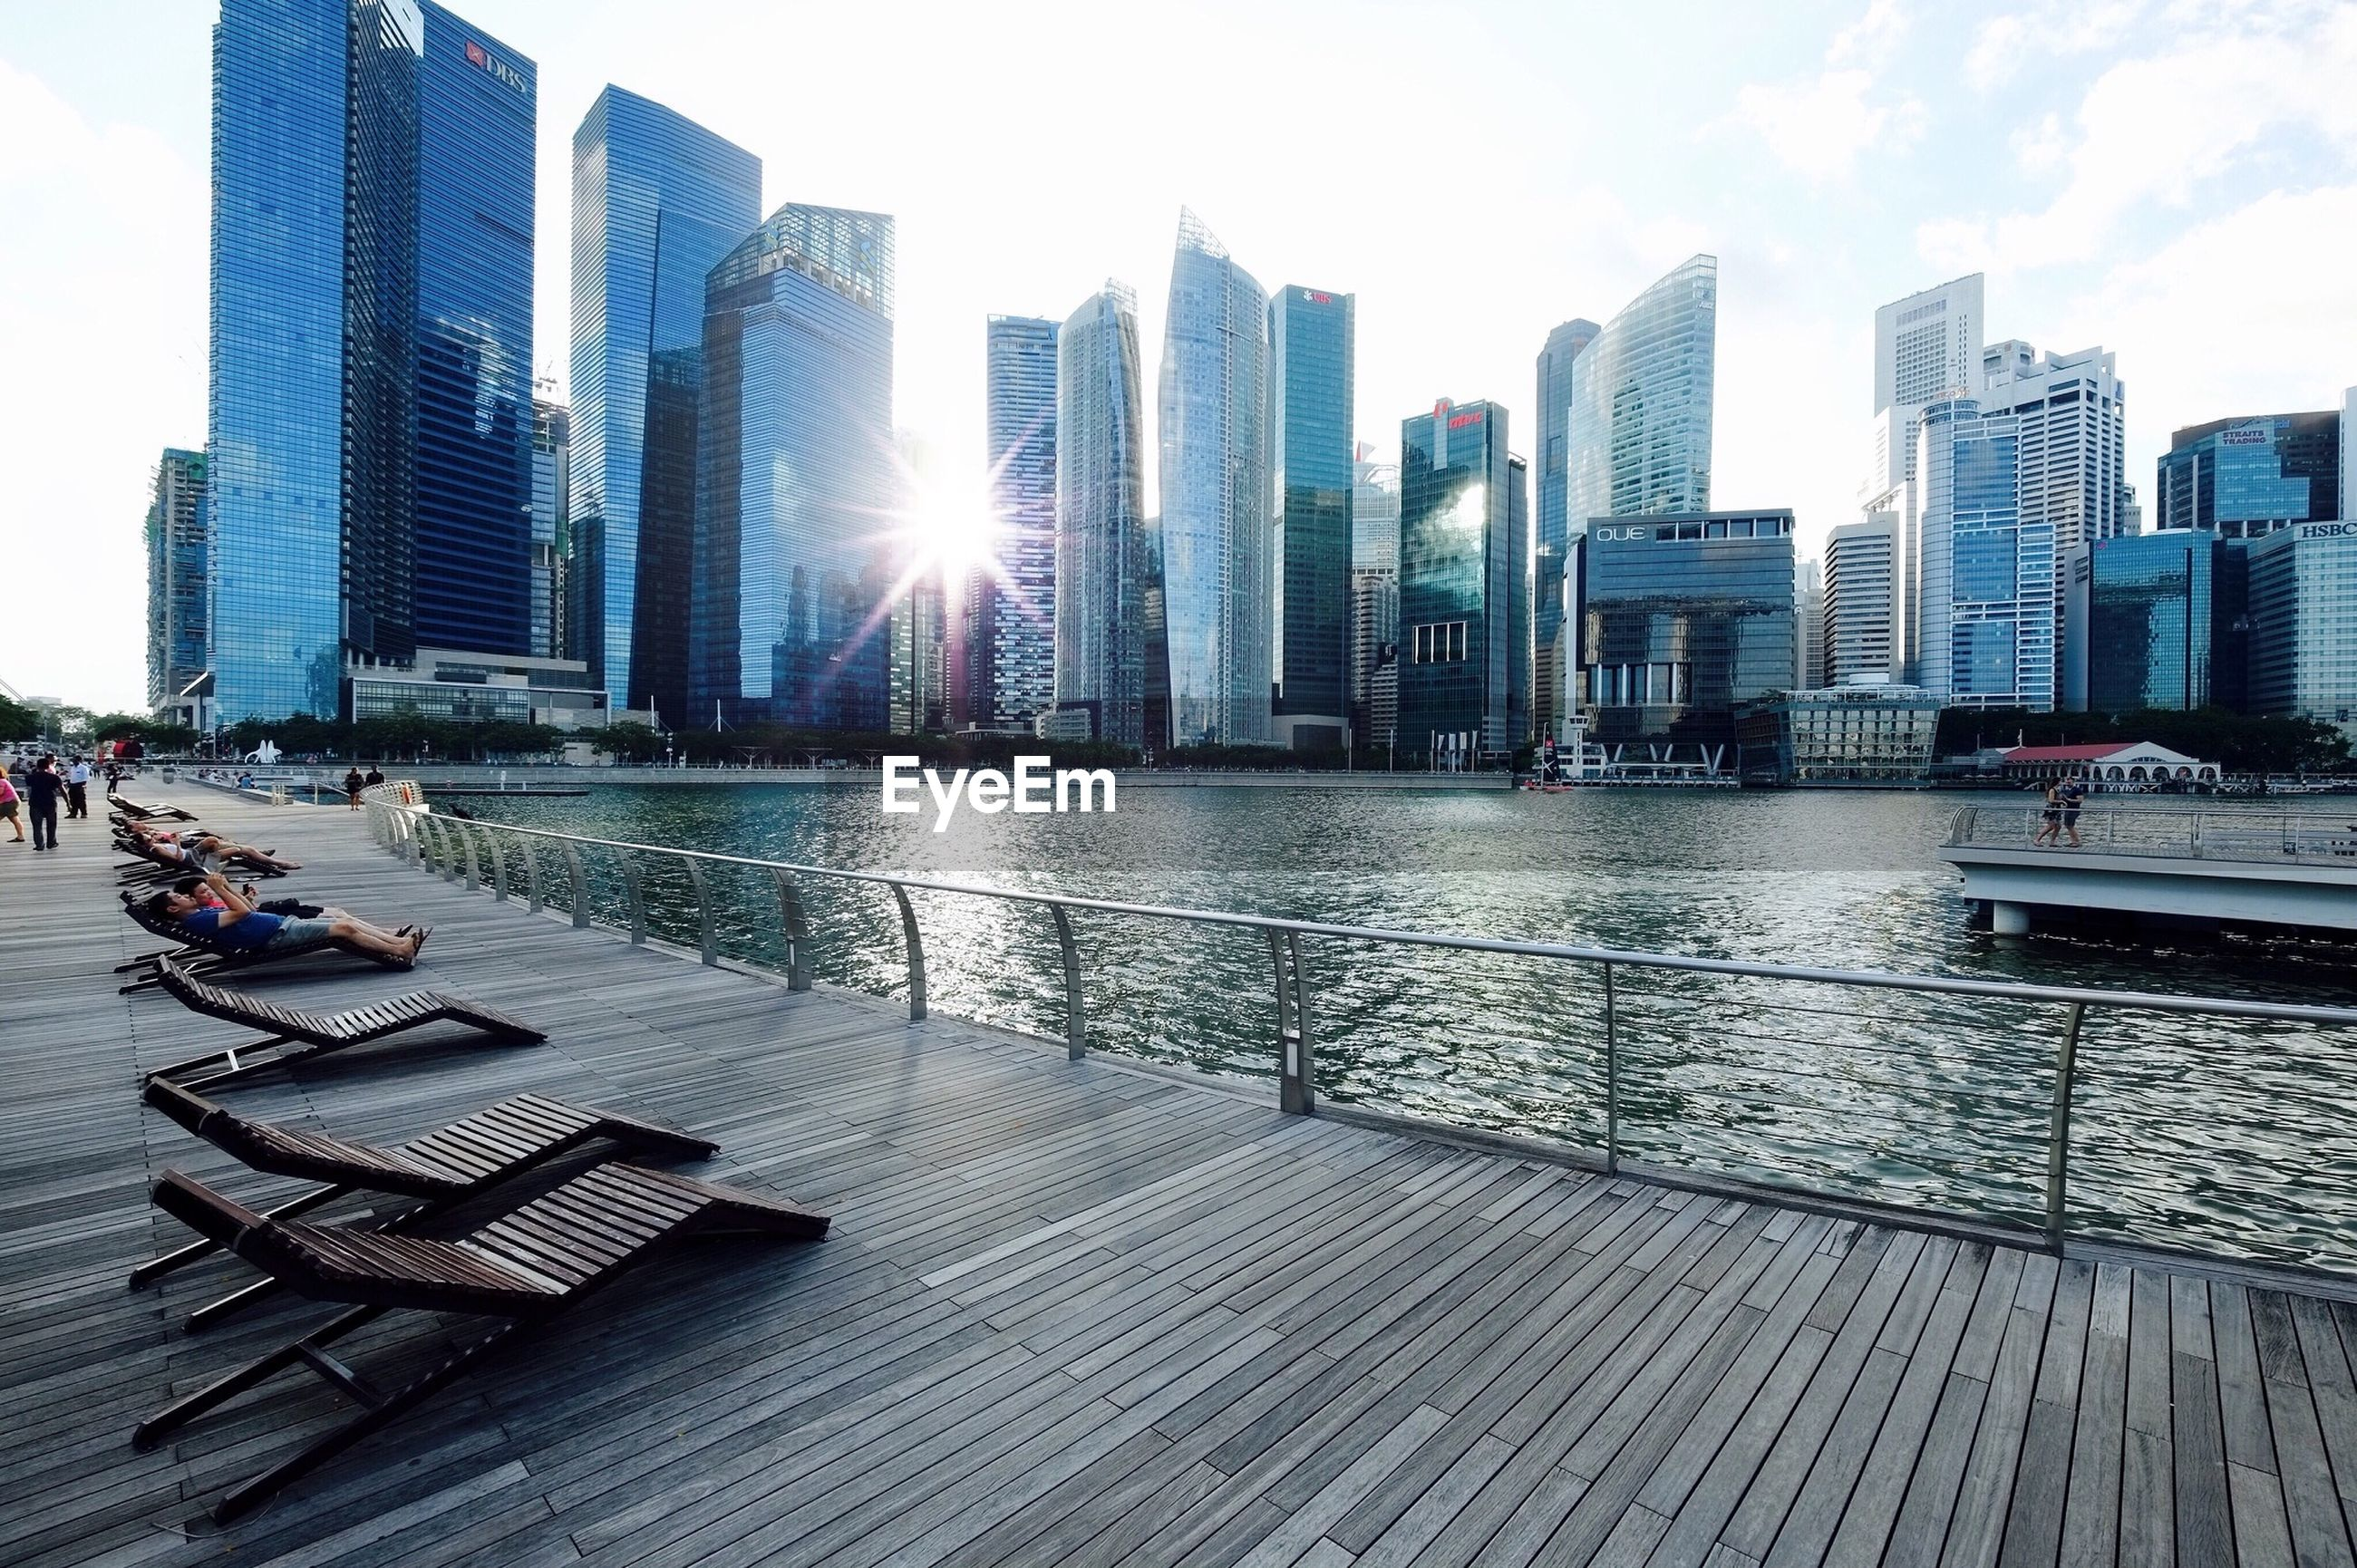 building exterior, city, skyscraper, architecture, built structure, modern, office building, tall - high, water, urban skyline, tower, cityscape, sky, city life, financial district, reflection, building, sunlight, tall, skyline